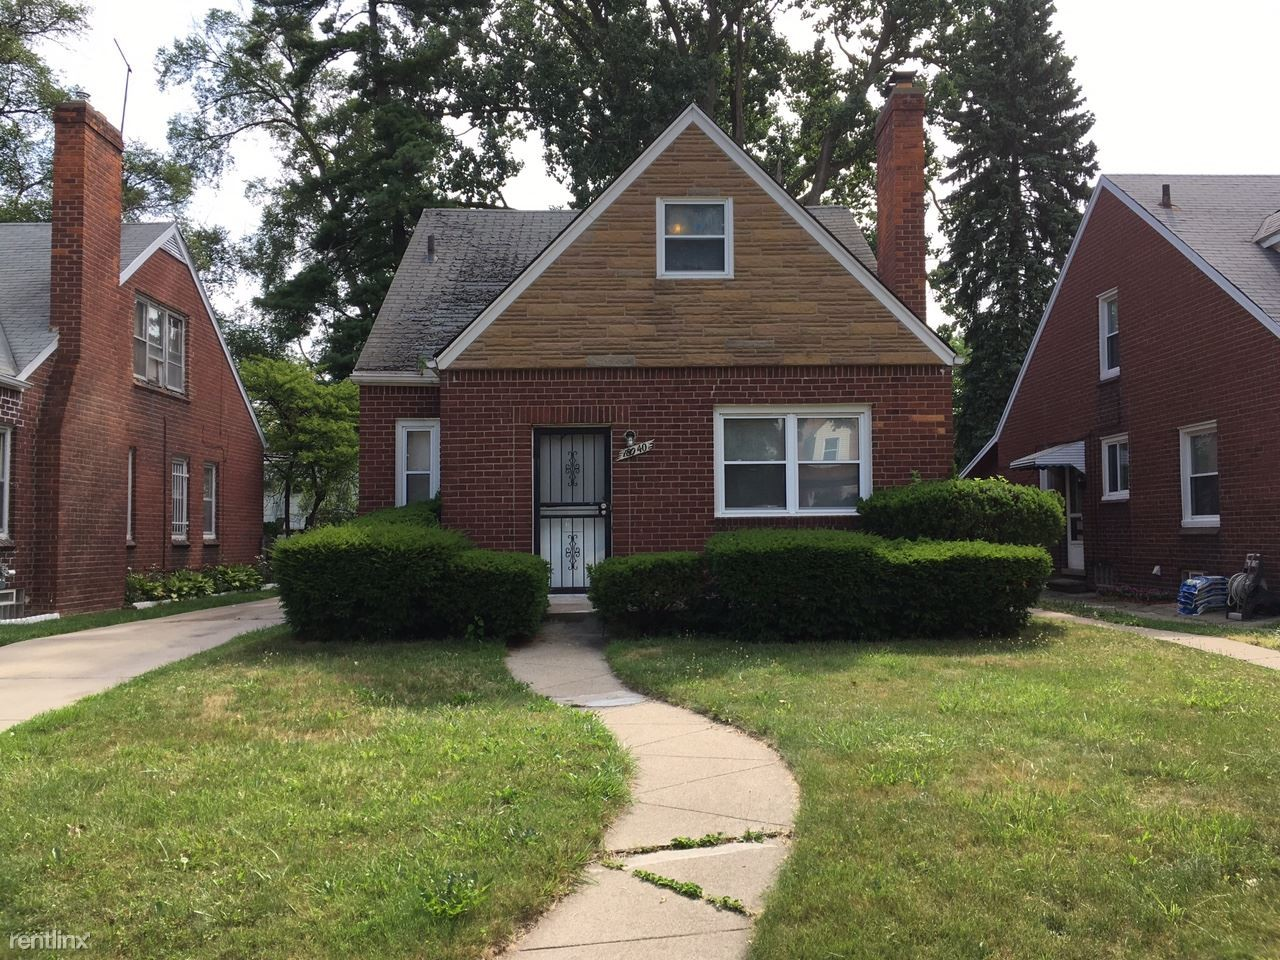 W 7 Mile Rd Detroit Mi 48221 3 Bedroom Apartment For Rent Padmapper